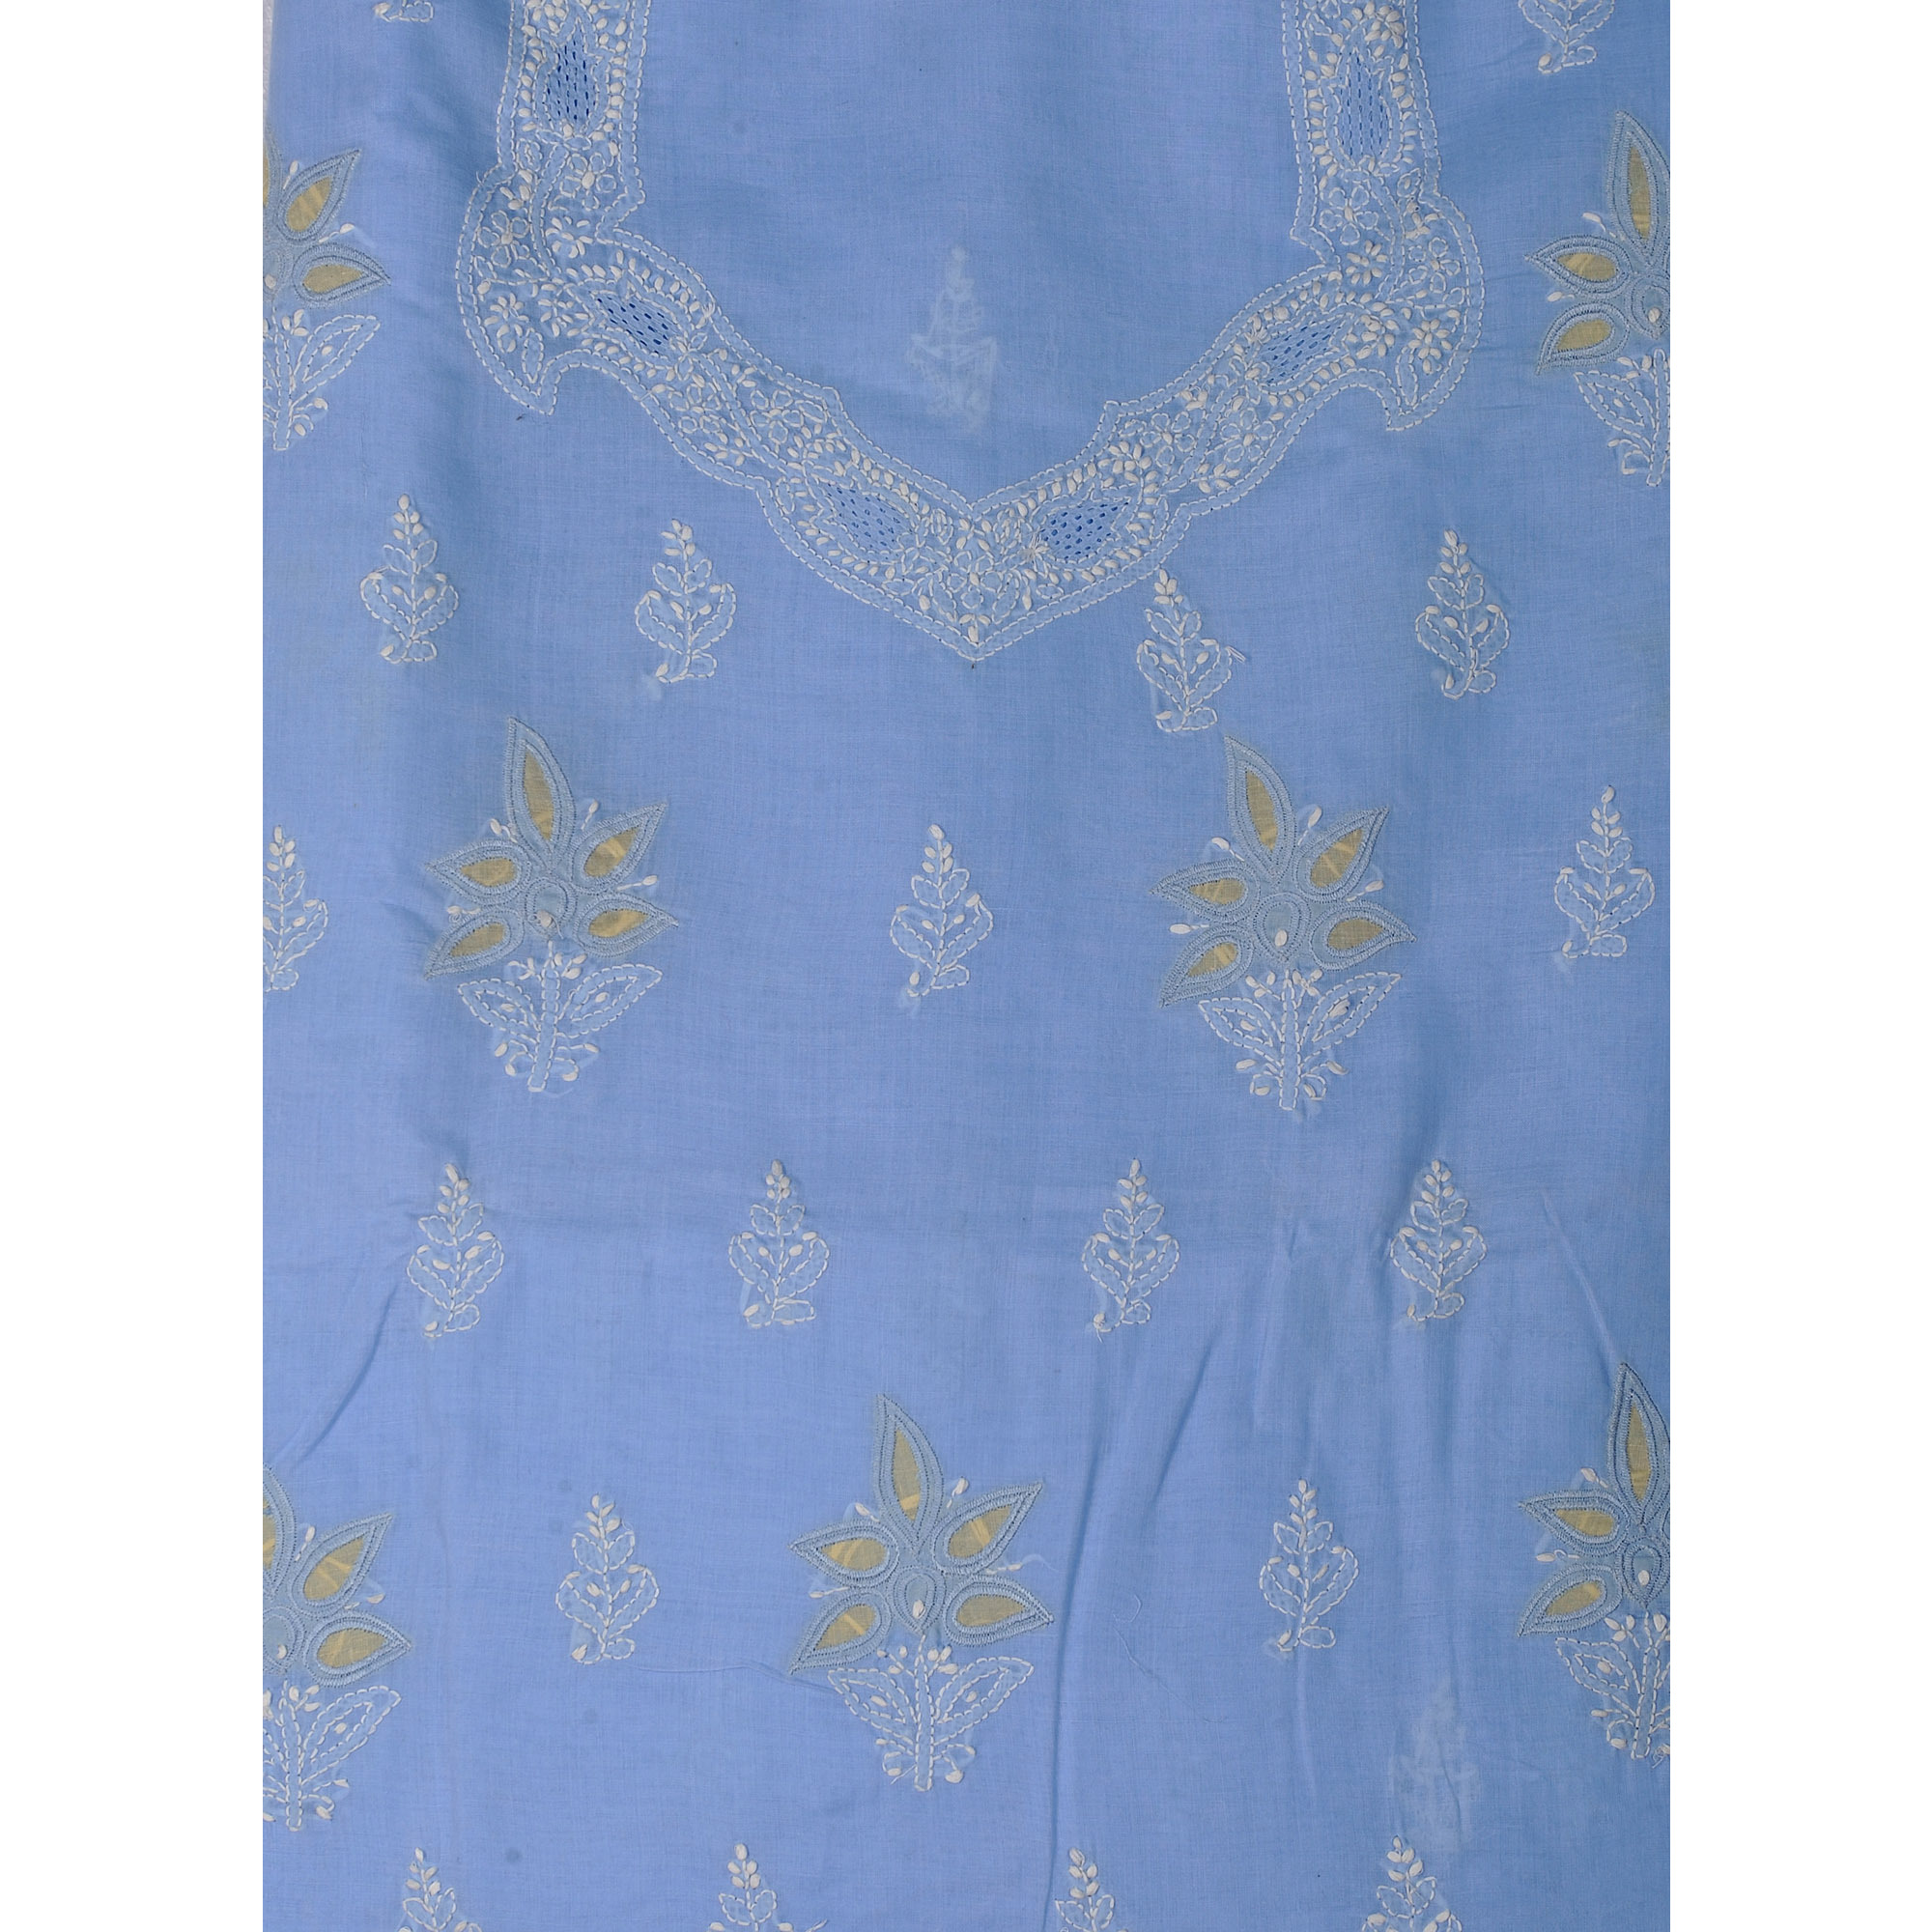 Placid-Blue Salwar Kameez Fabric with Lukhnawi Chikan Embroidery by Hand